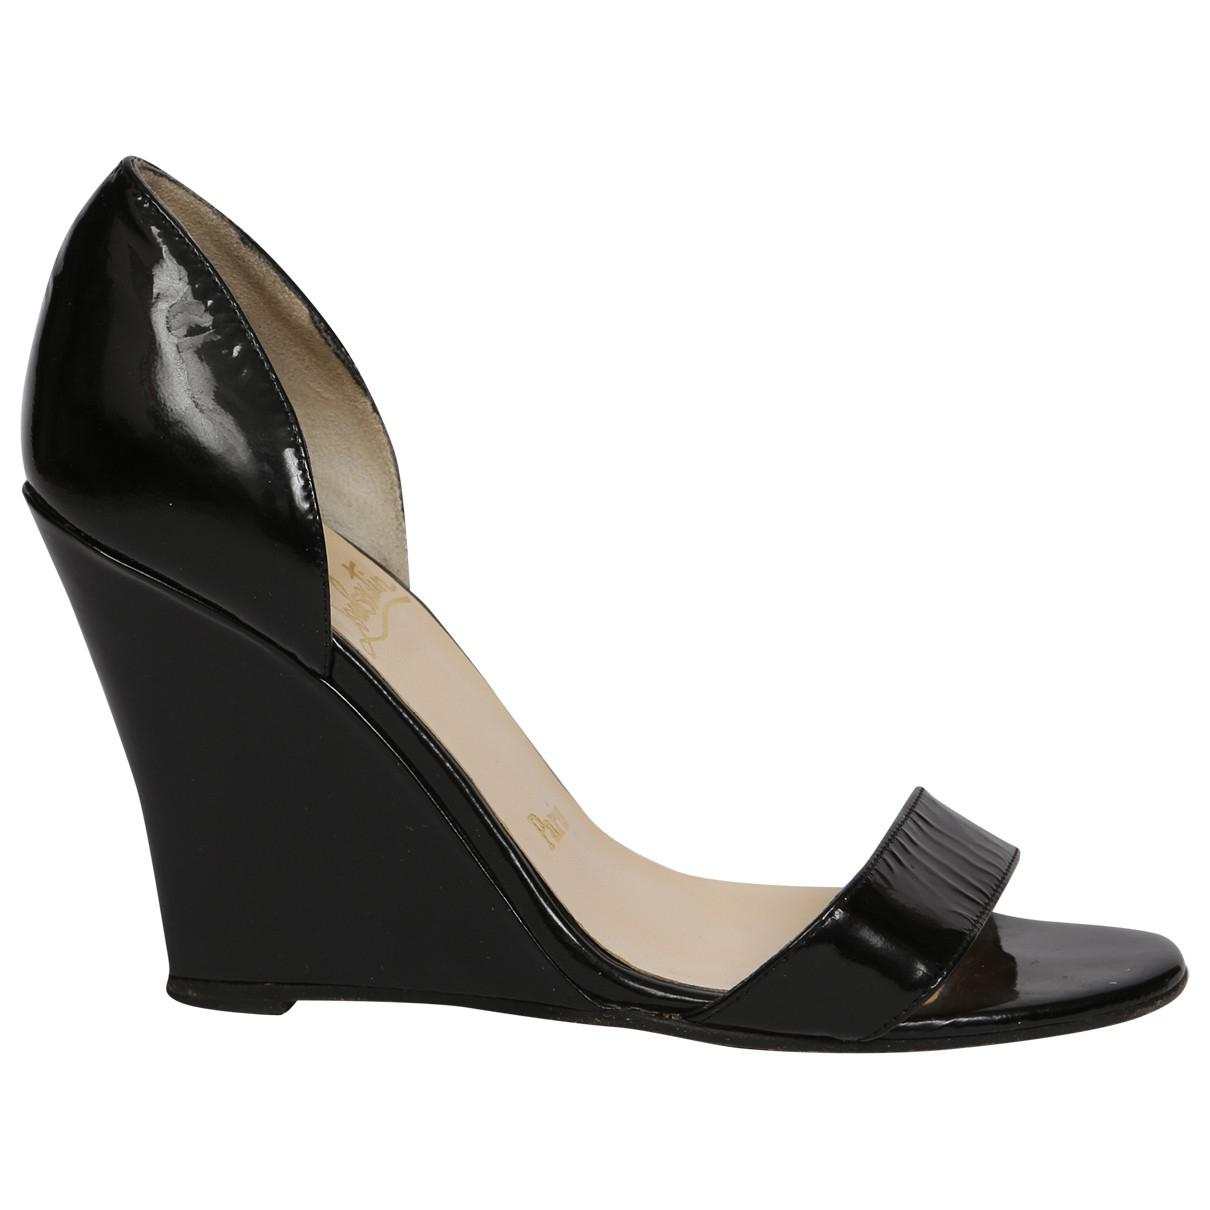 8db2b5a6814 christian-louboutin-Black-Pre-owned-Patent-Leather-Heels.jpeg